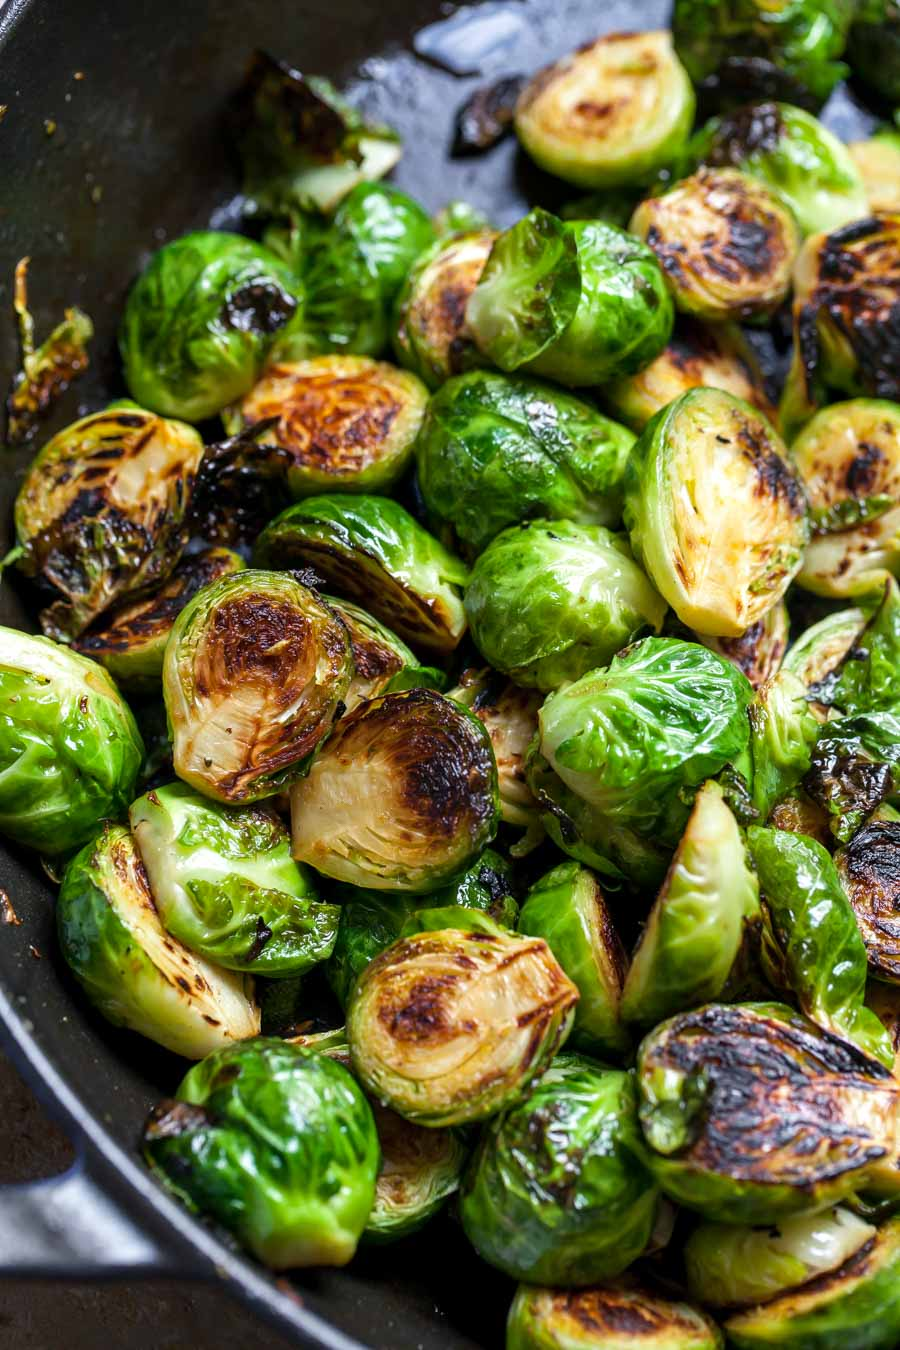 Sautéed Brussels Sprouts on the Stove